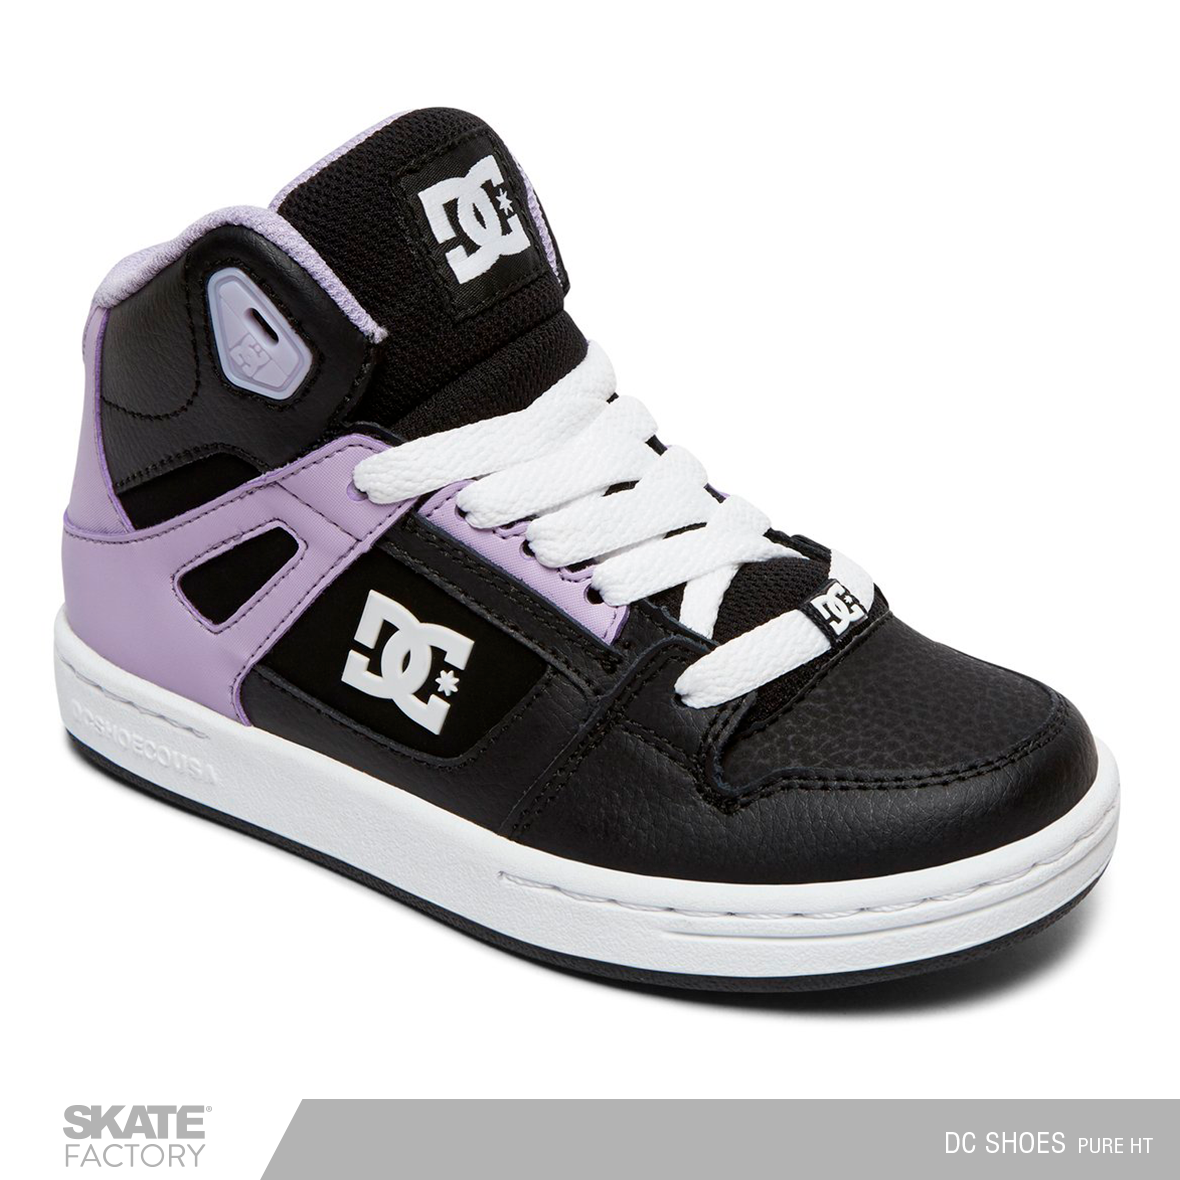 TENIS DAMA DC SHOES PURE NEGRO MORADO – Skate Factory